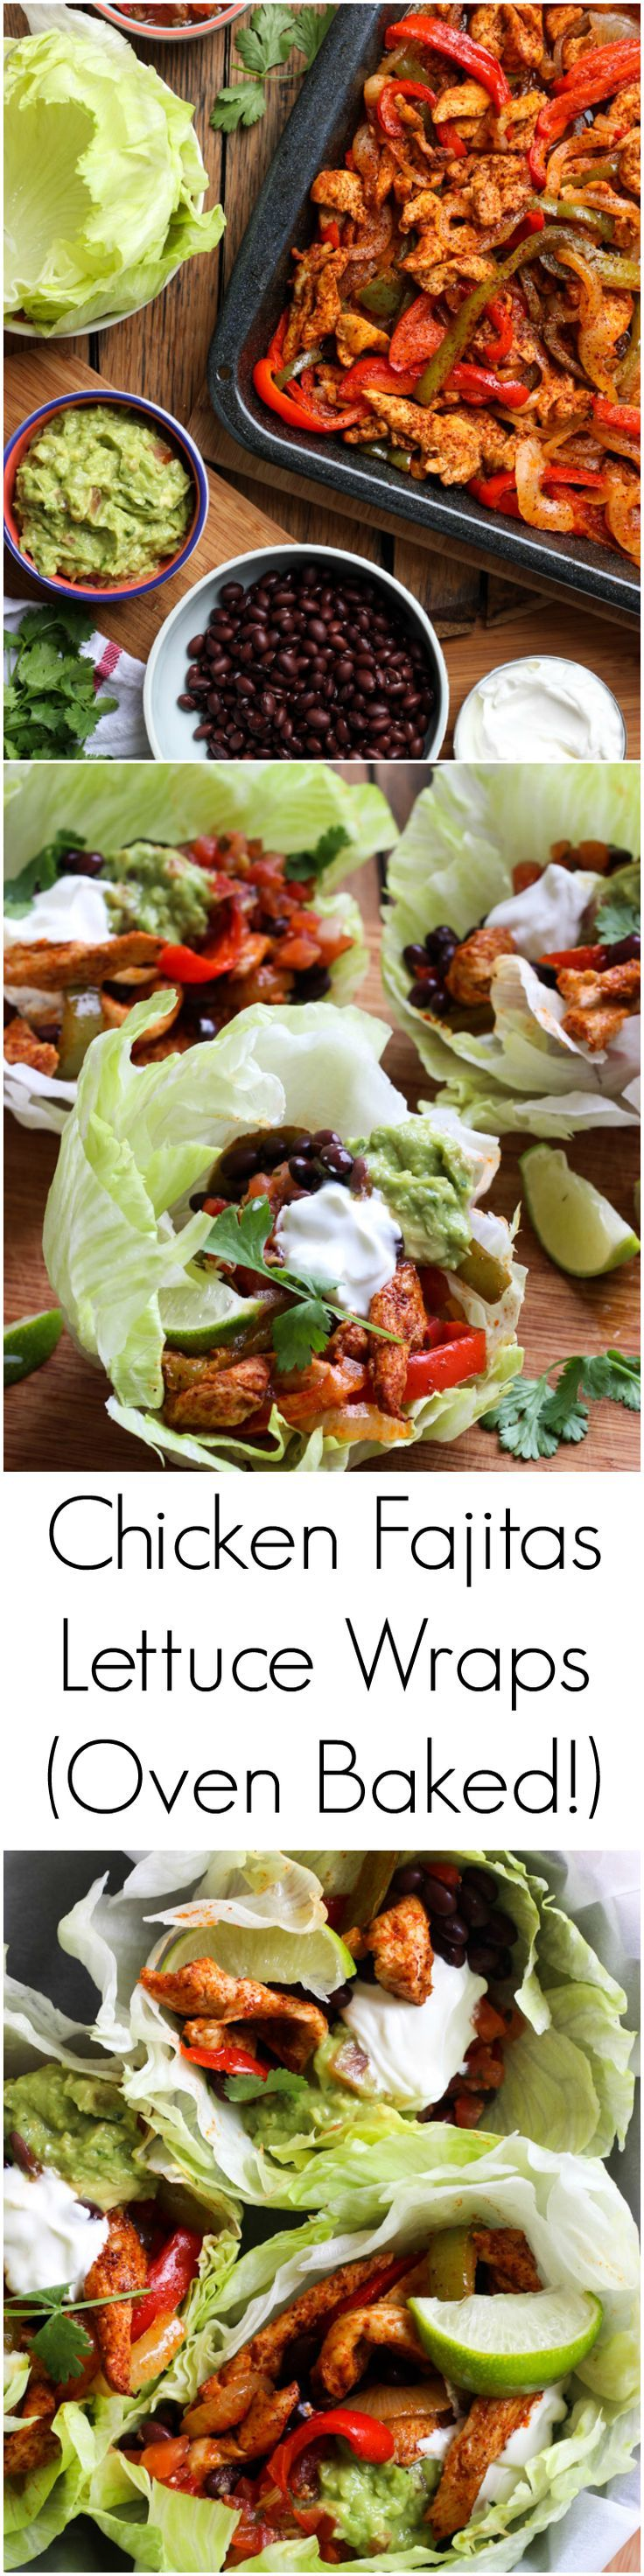 With one little trick and you have the most juiciest oven baked chicken fajitas! Served in a lettuce wrap for a healthy dinner   http://littlebroken.com /littlebroken/